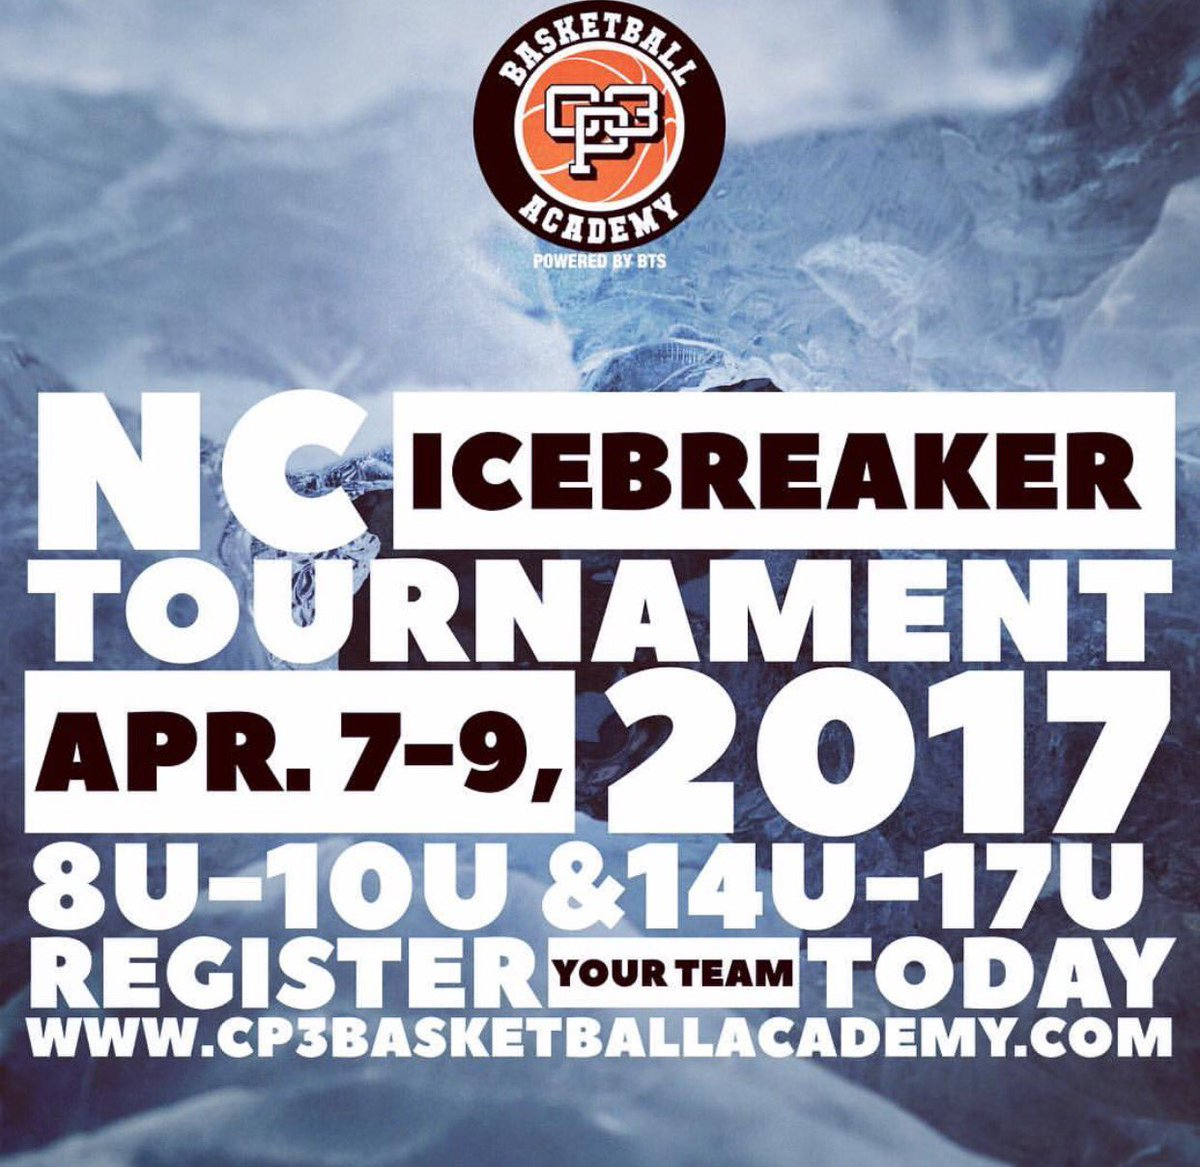 North Carolina! Head over to   to register your team for the Ice Breaker Tournament!!